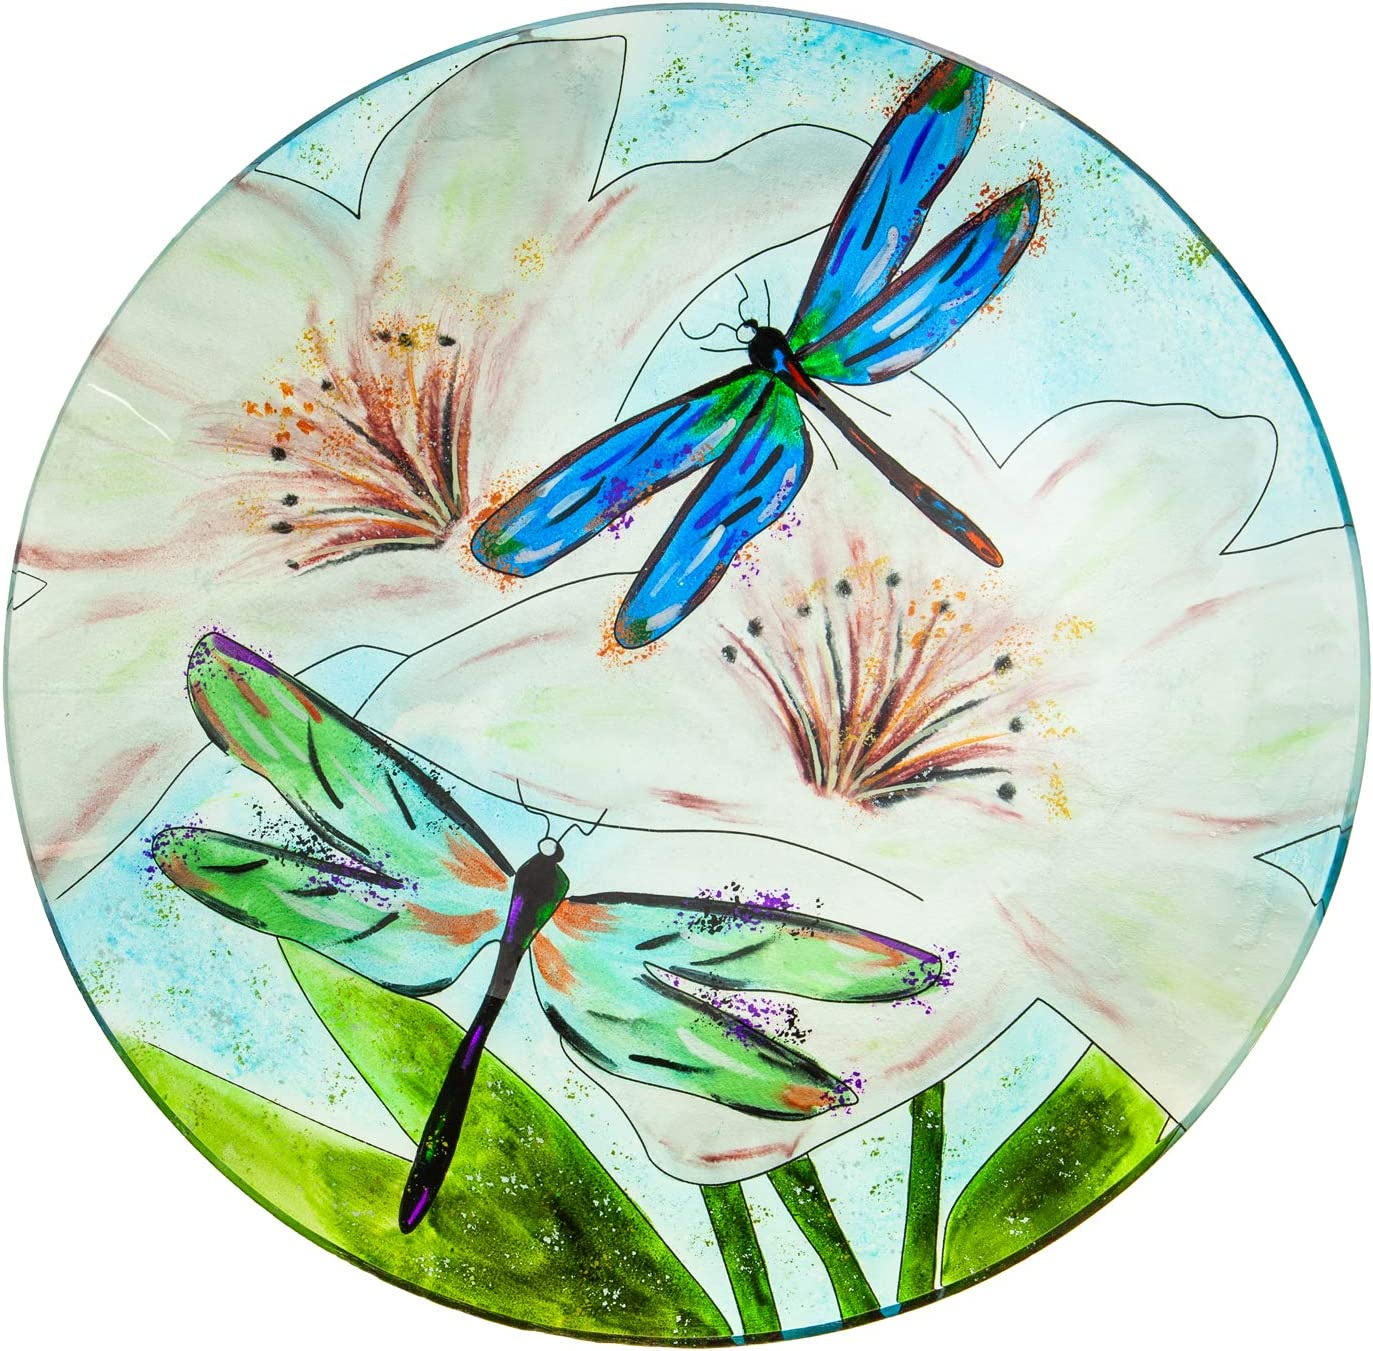 Evergreen Garden Beautiful Summer Resting Dragonfly Glass Bird Bath with Stand 16 x 16 x 2 Inches Fade and Weather Resistant Outdoor Decoration for Homes Yards and Gardens